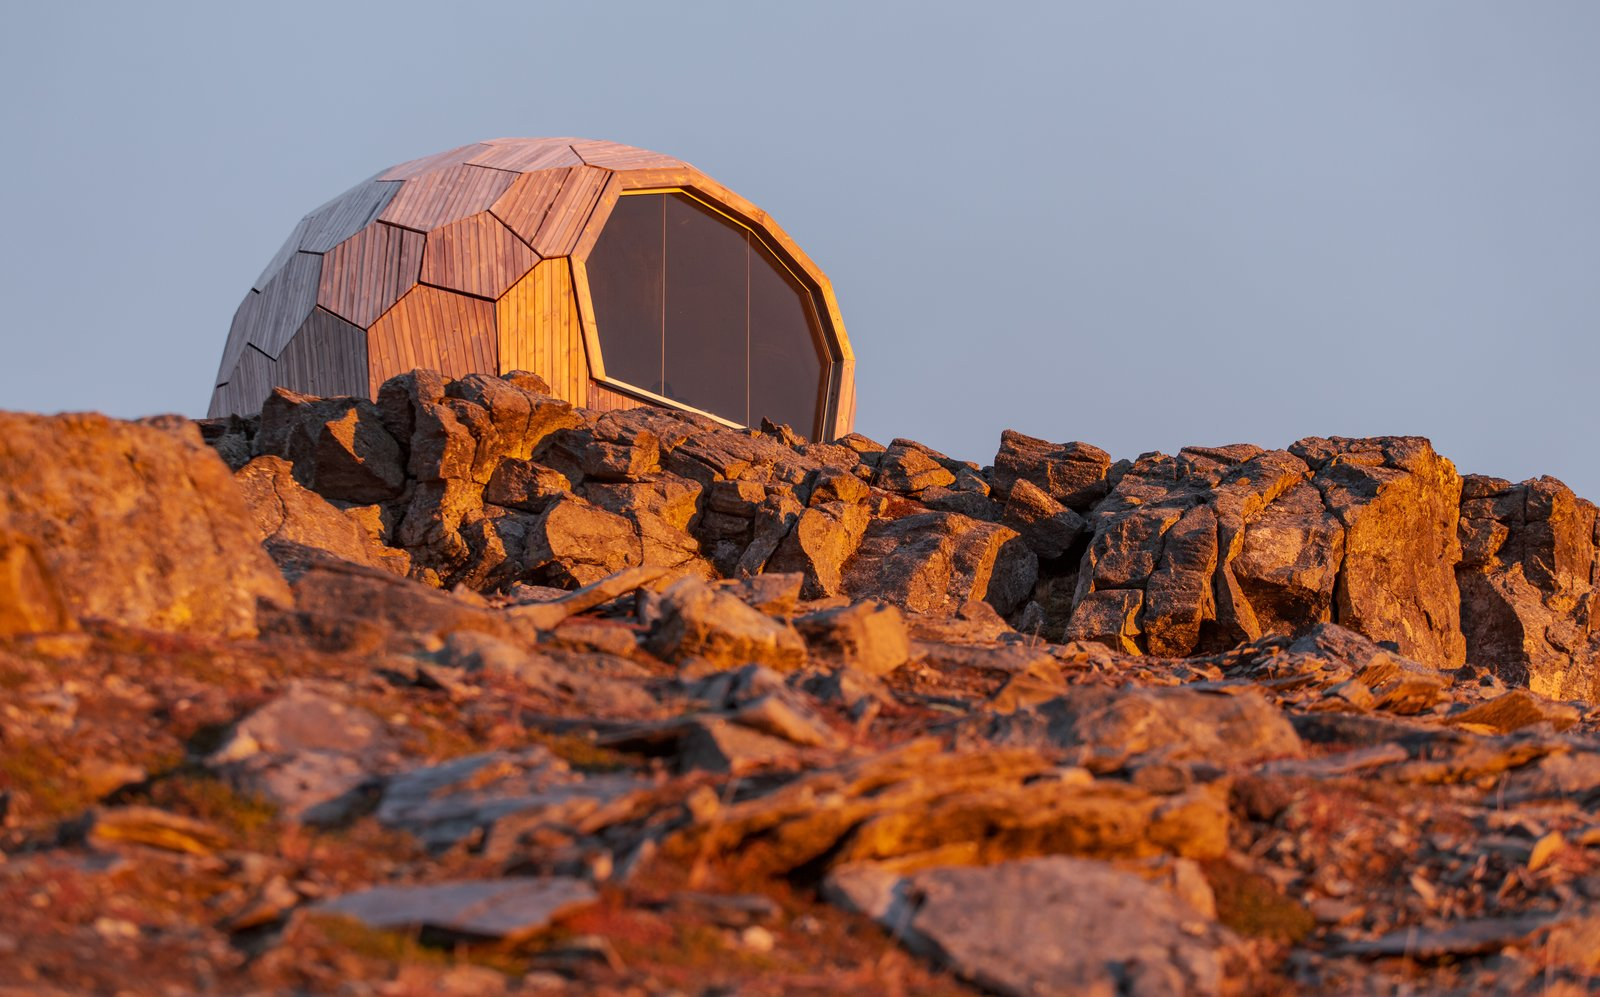 Fitting in seamlessly with the fabric of the natural landscape, the cabin makes a modest impact in scale, while providing a functional benefit to travelers in the region.